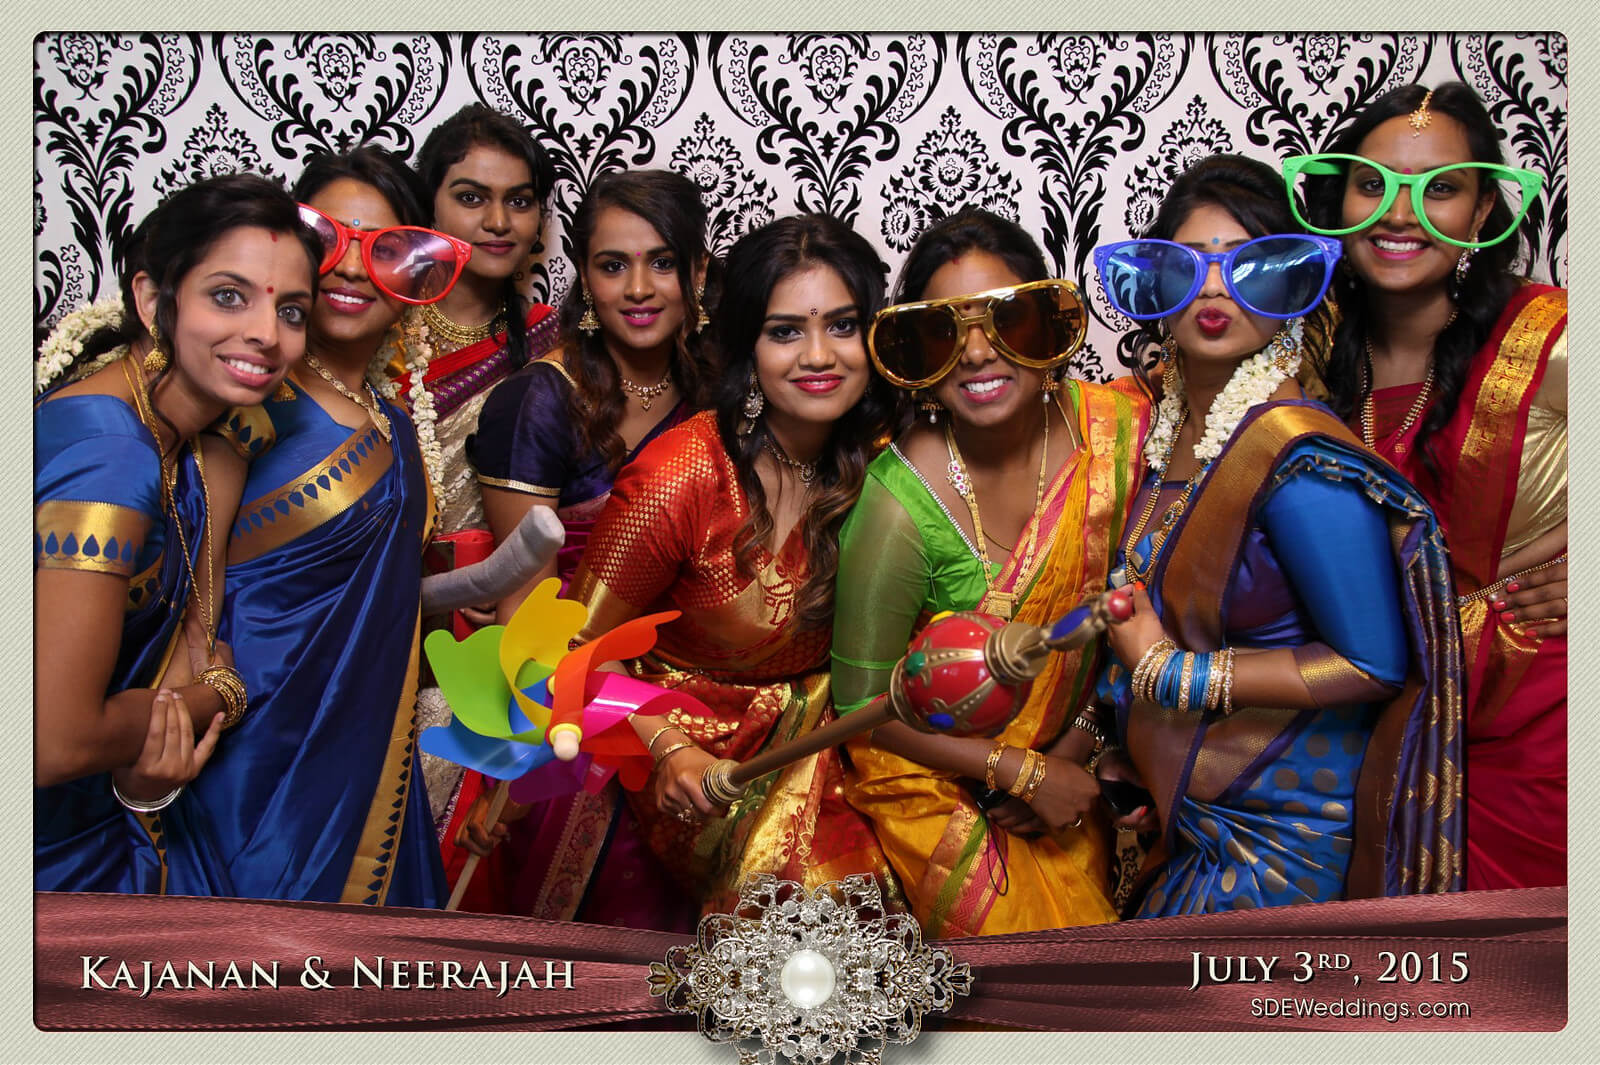 Toronto Scarborough Convention Centre Hindu Wedding Photo Booth Rental 5